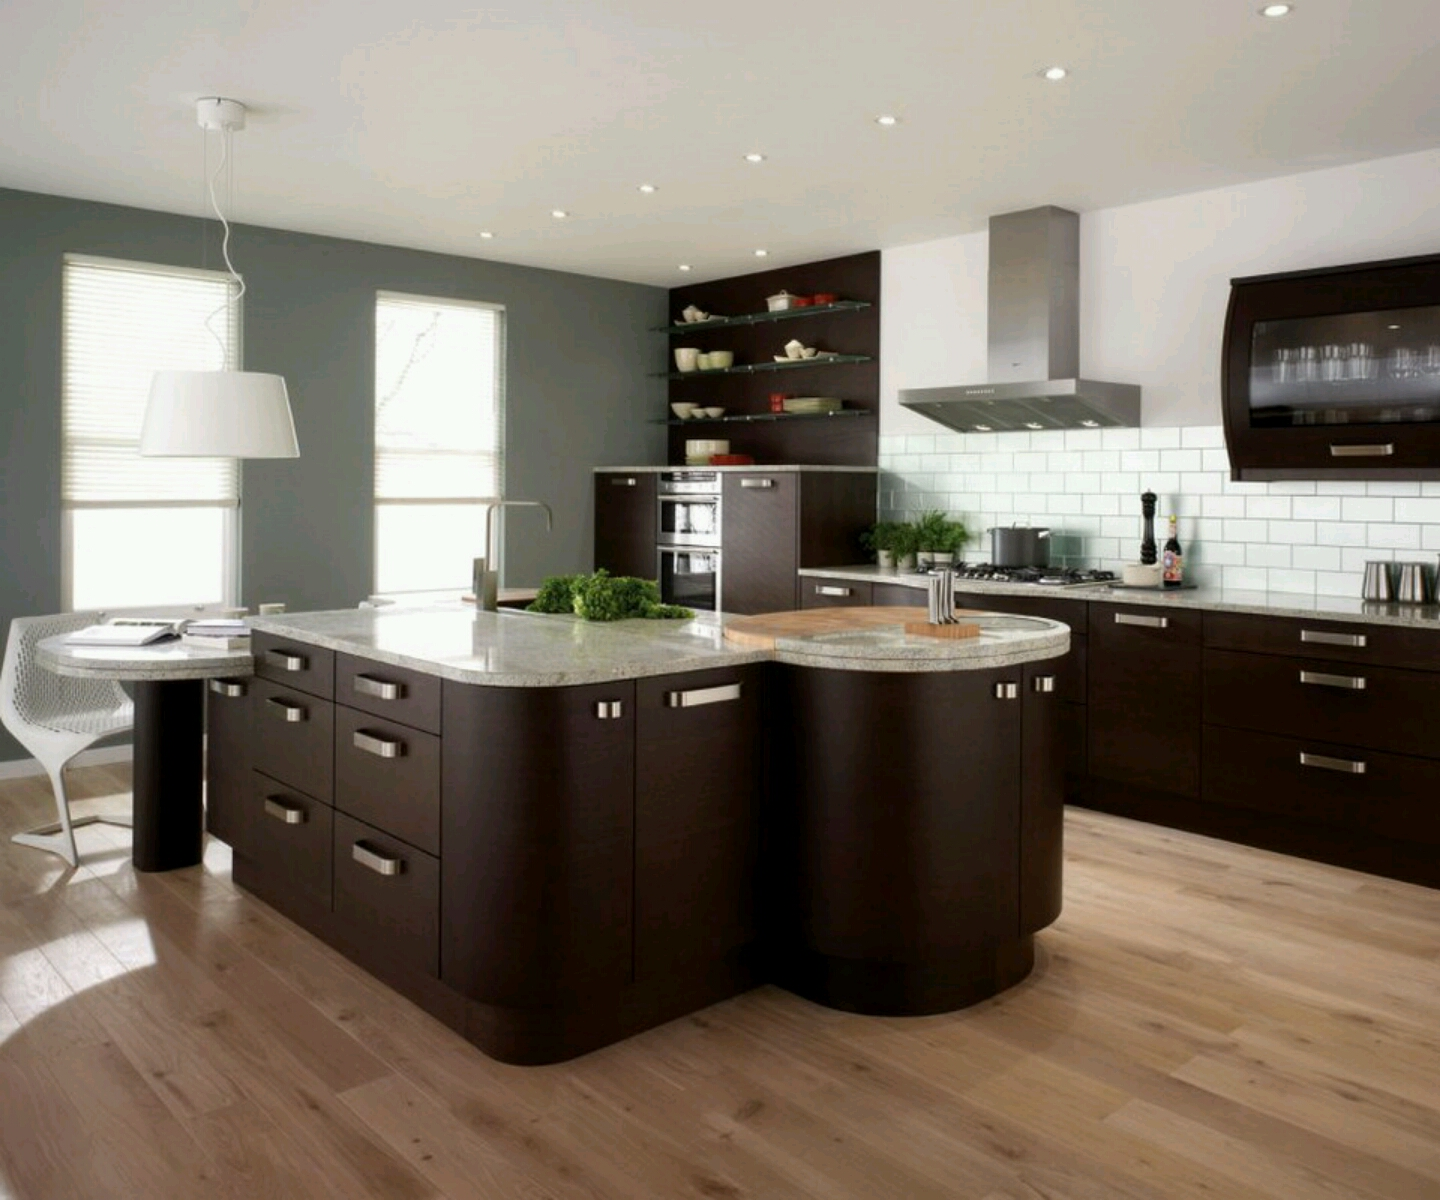 Modern home kitchen cabinet designs ideas new home designs Modern design kitchen designs